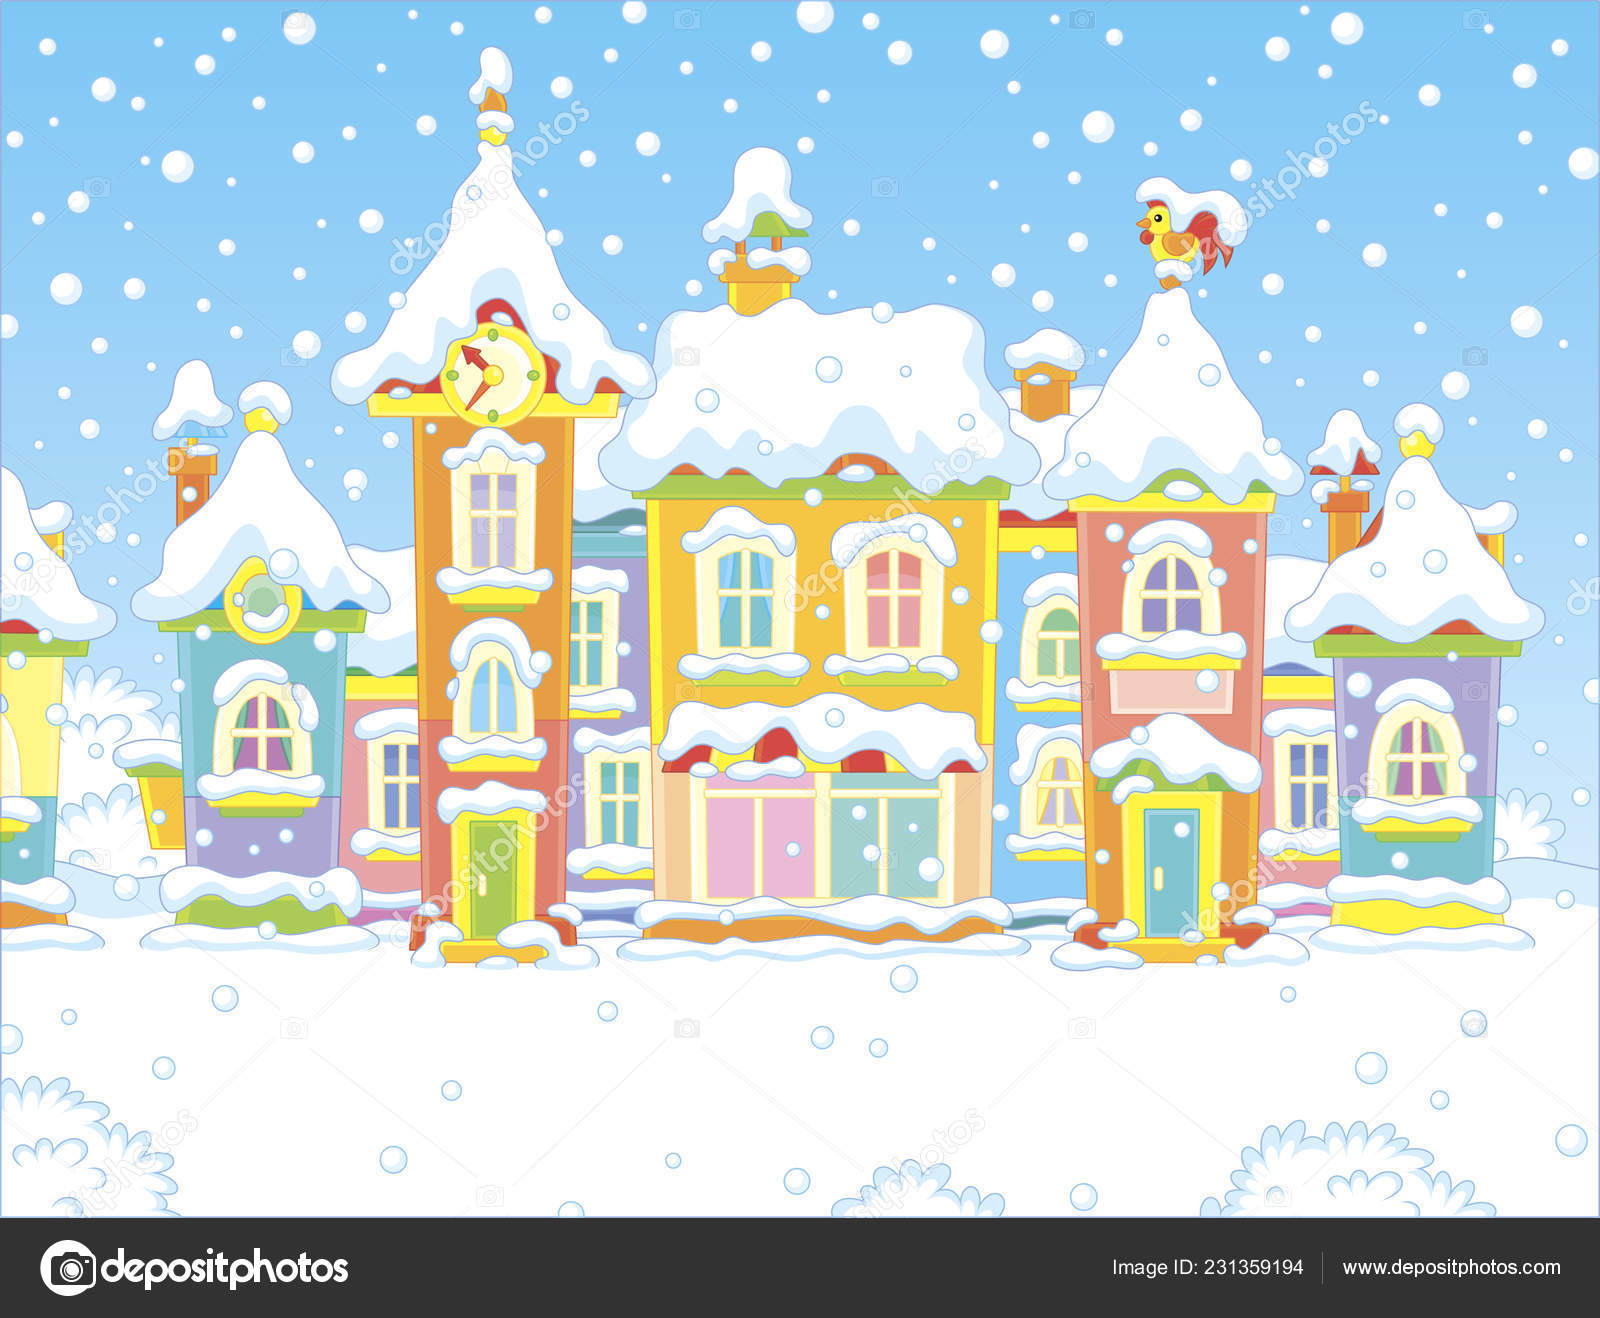 Phenomenal Clipart Snowy Day Colorful Houses Small Toy Town Snowy Interior Design Ideas Skatsoteloinfo